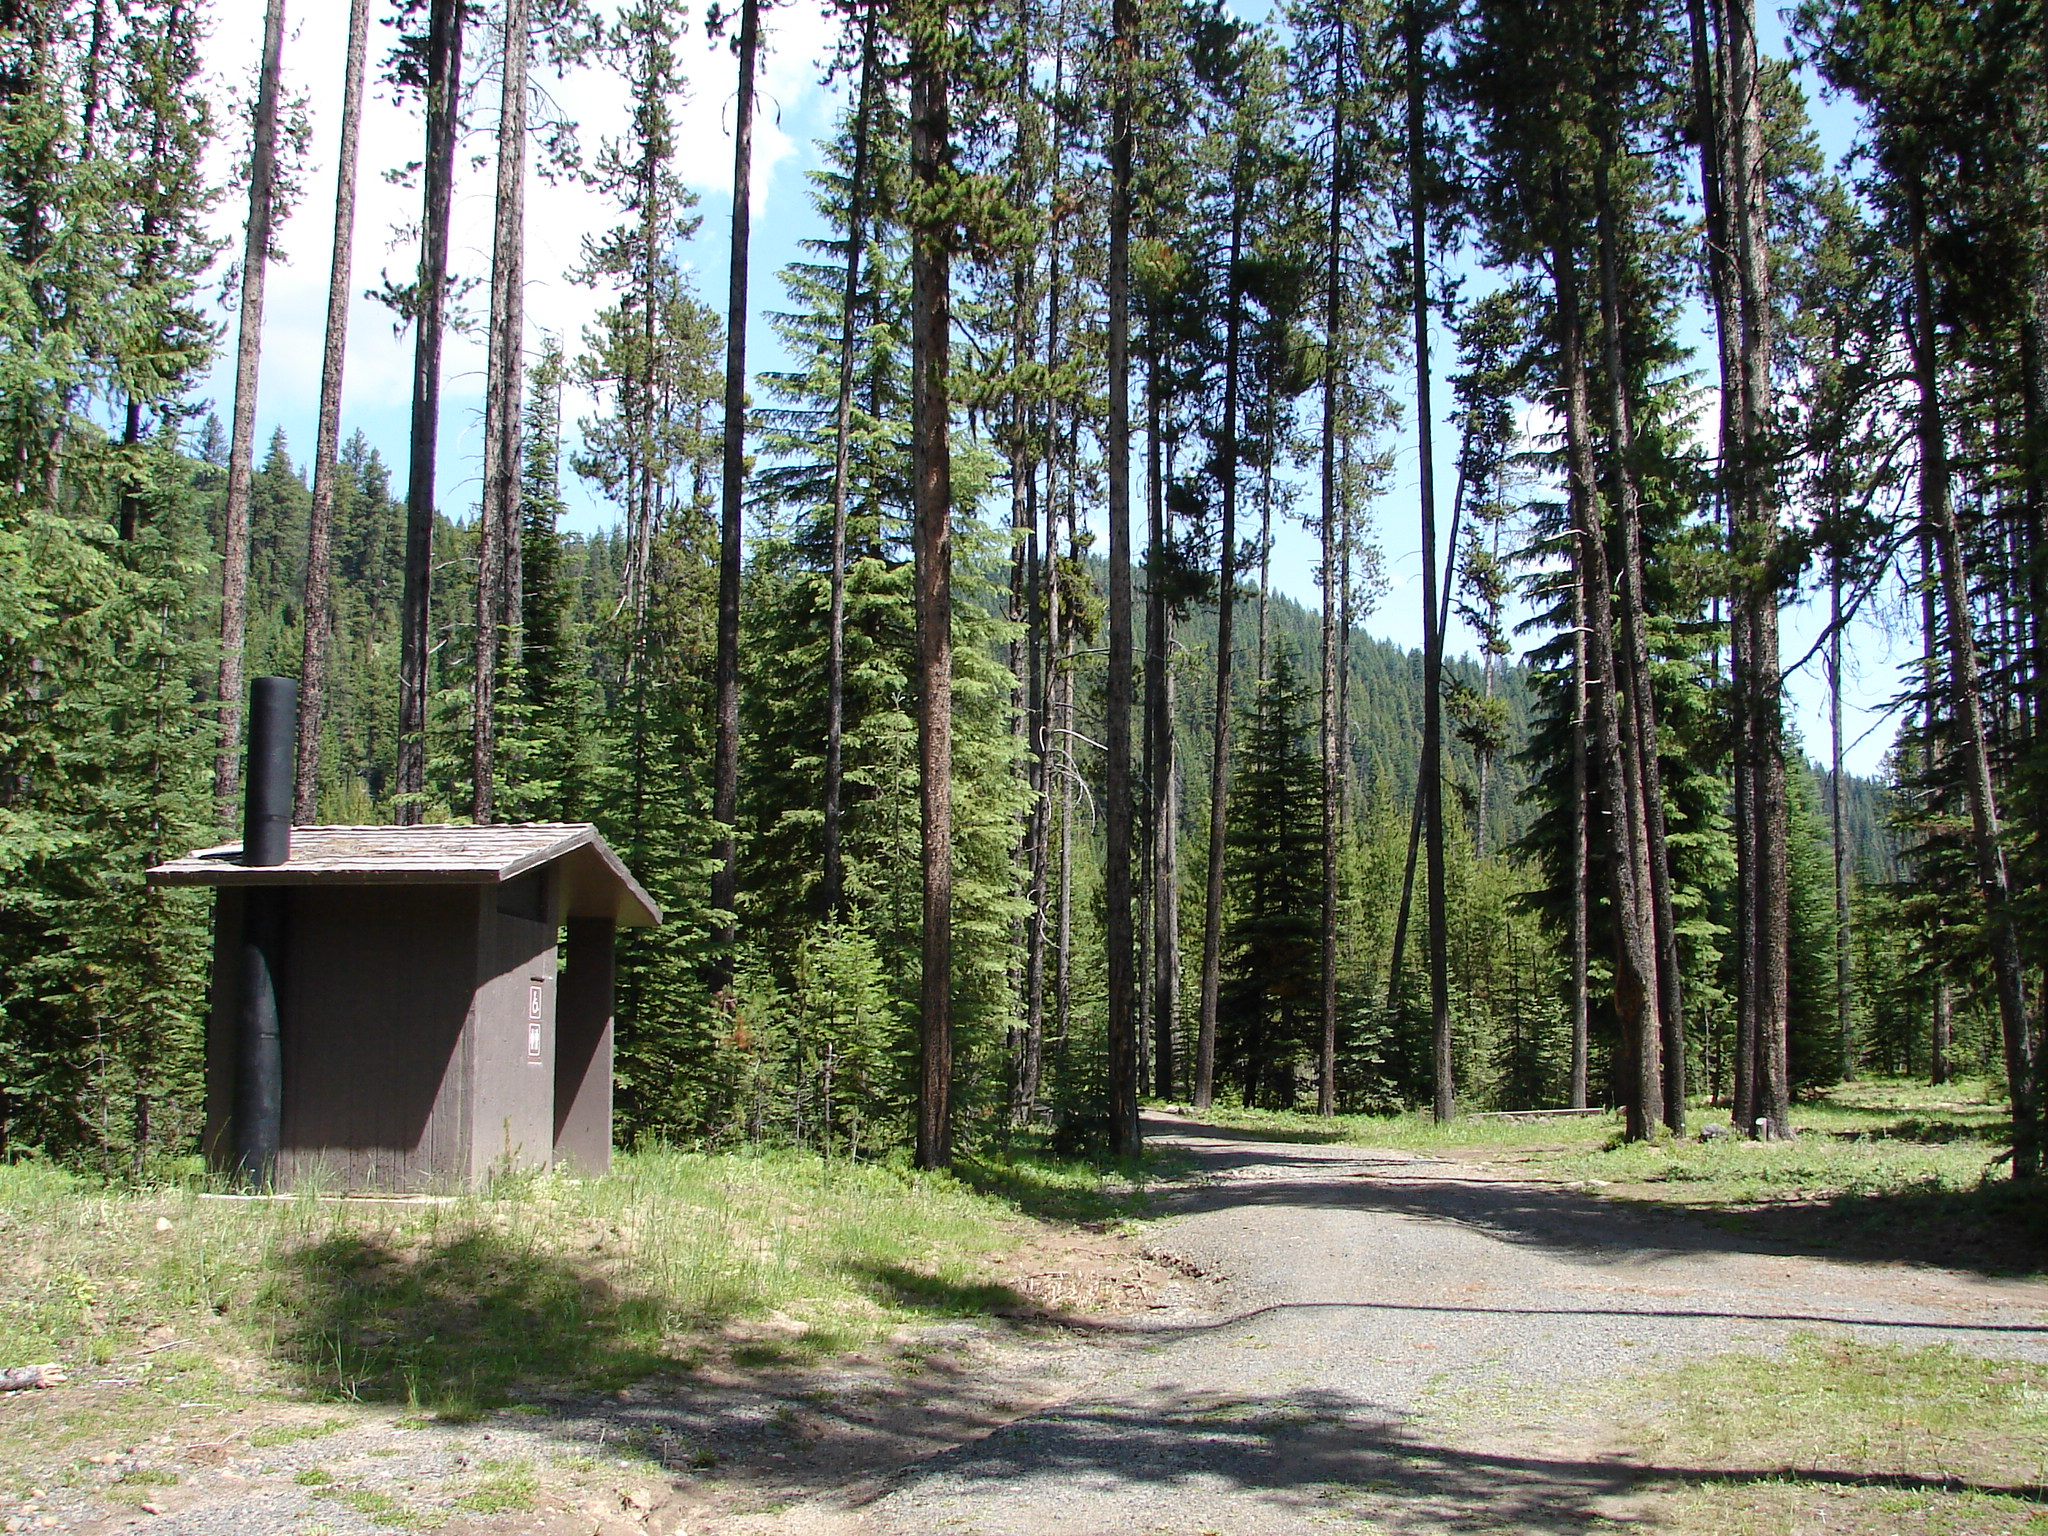 Baldy Creek Trailhead toilet in a pine forest setting